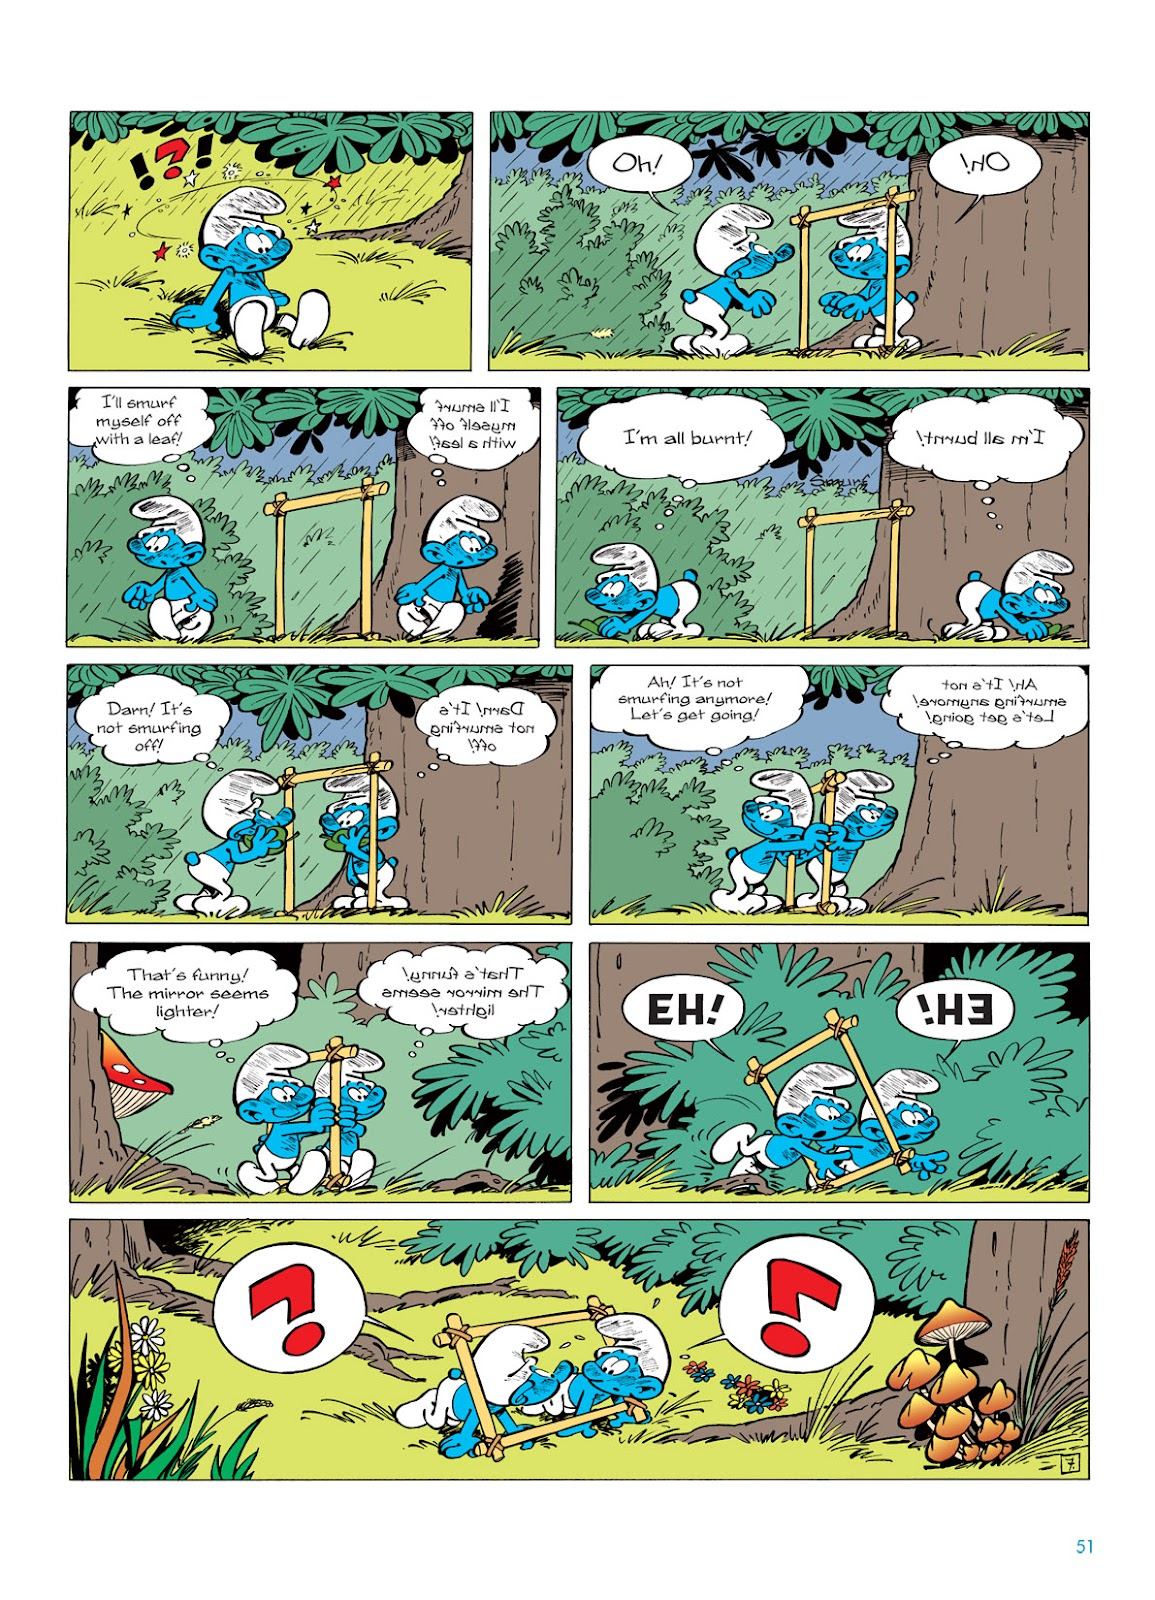 Read online The Smurfs comic -  Issue #5 - 51